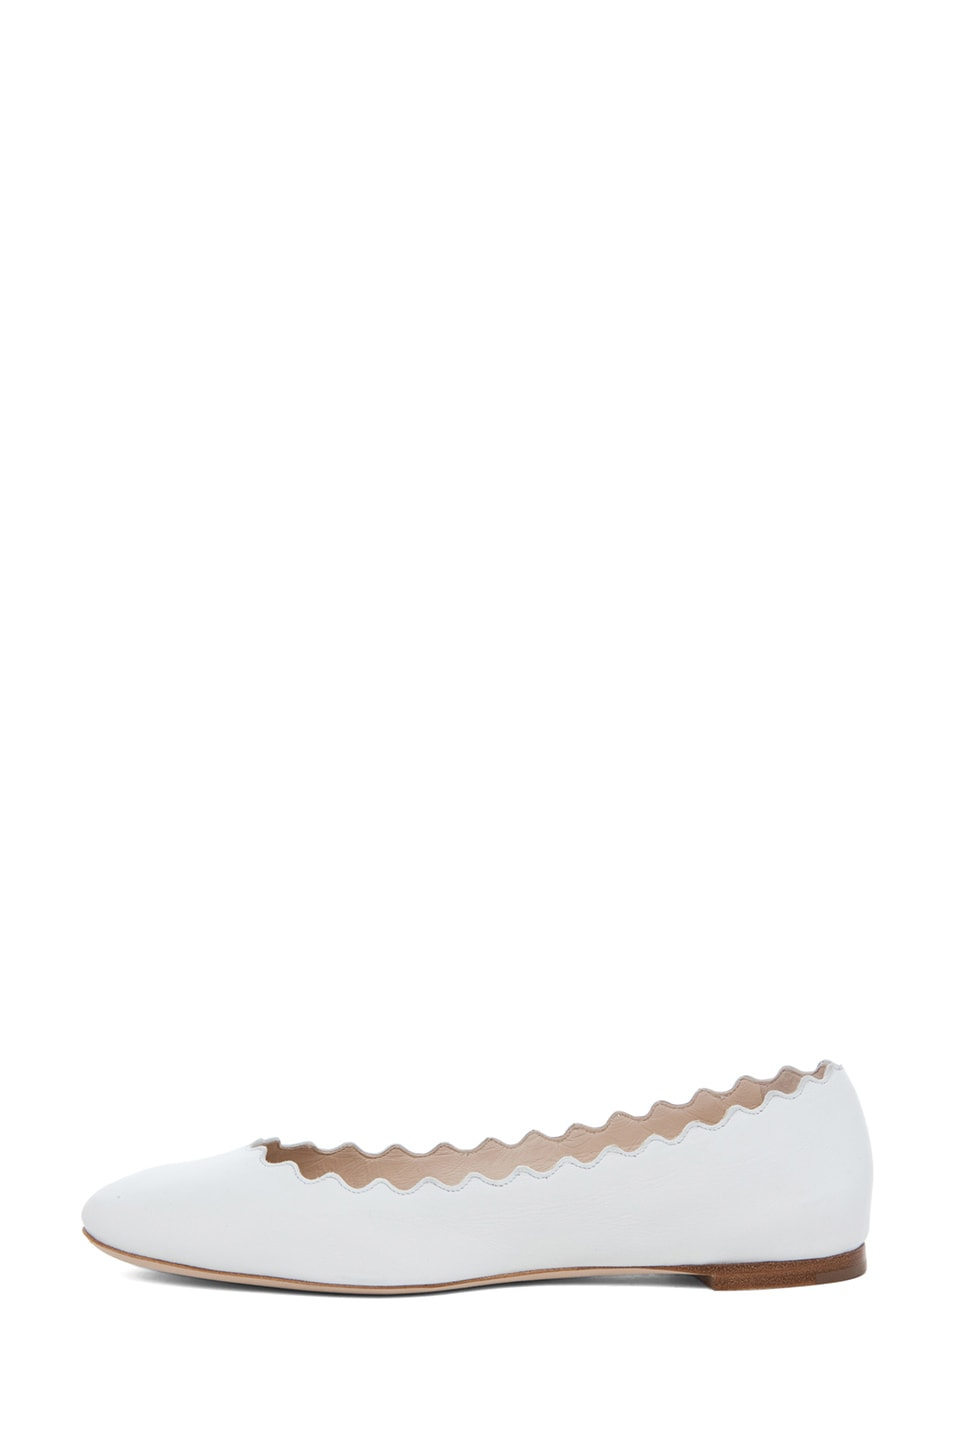 Image 1 of Chloe Leather Scallop Ballerina Flat in White